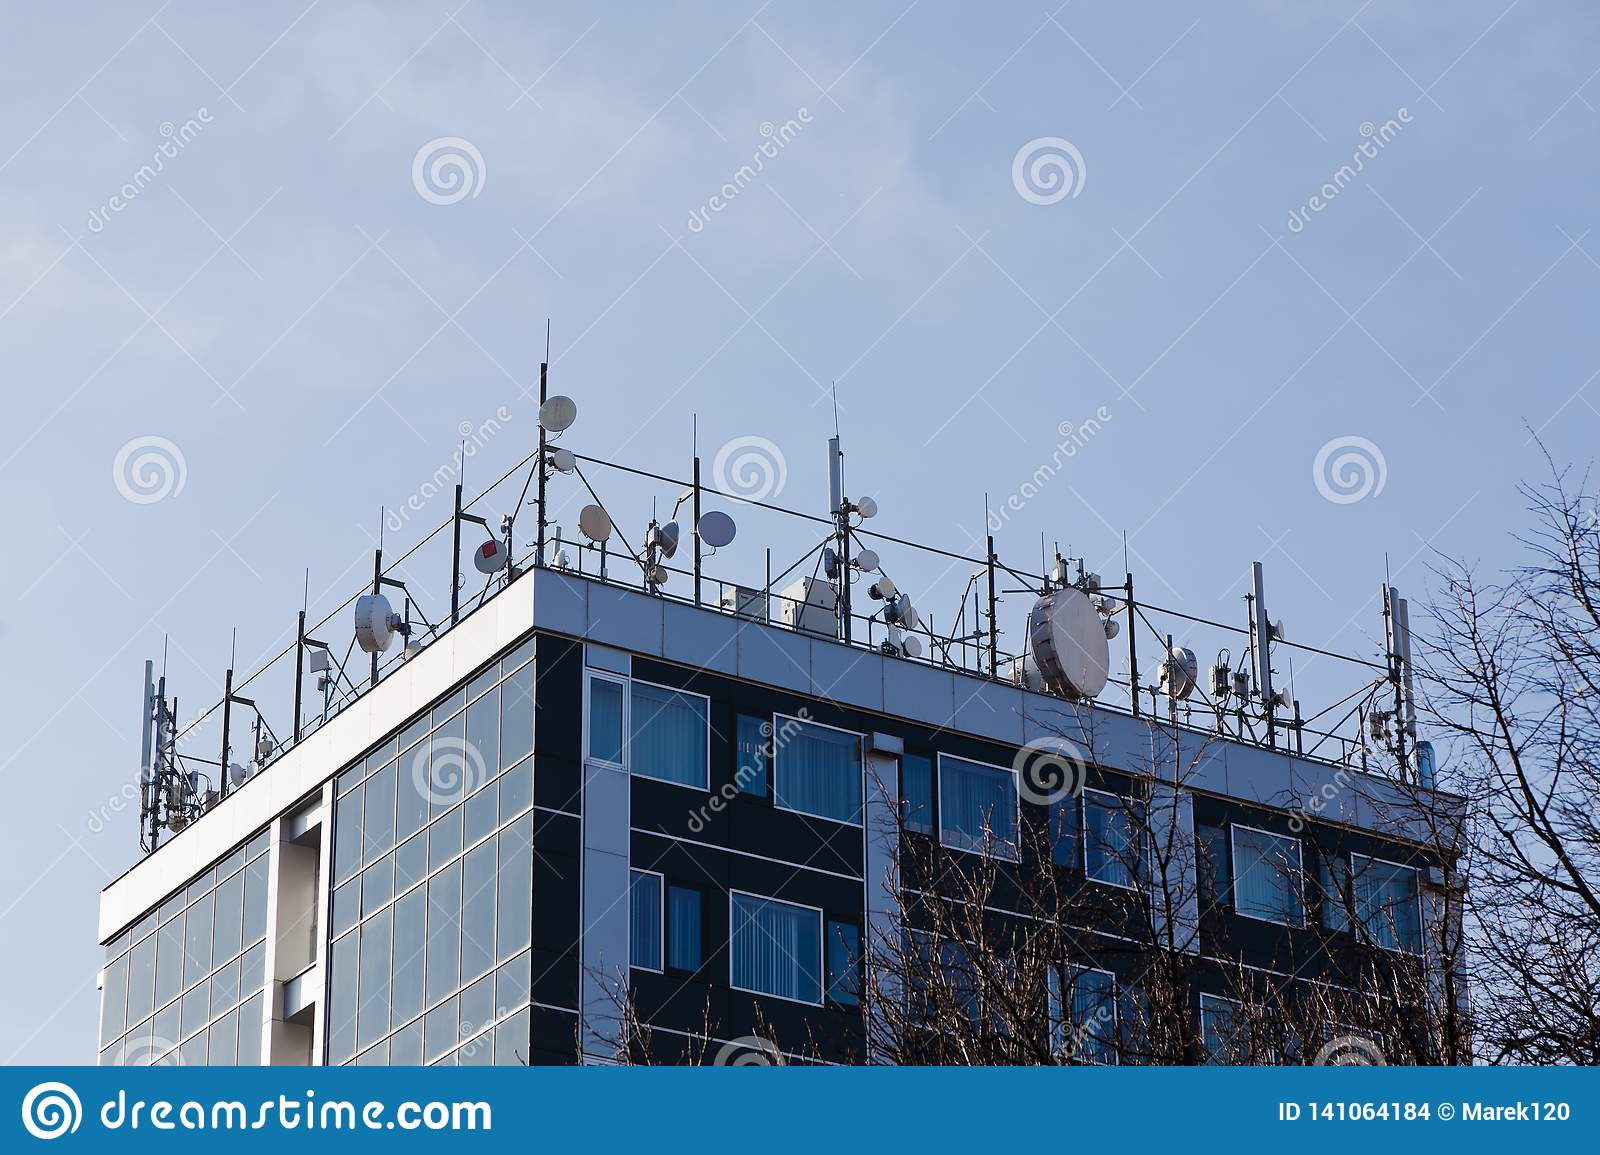 Top of building full of satellites and microwaves connections - Stay tuned